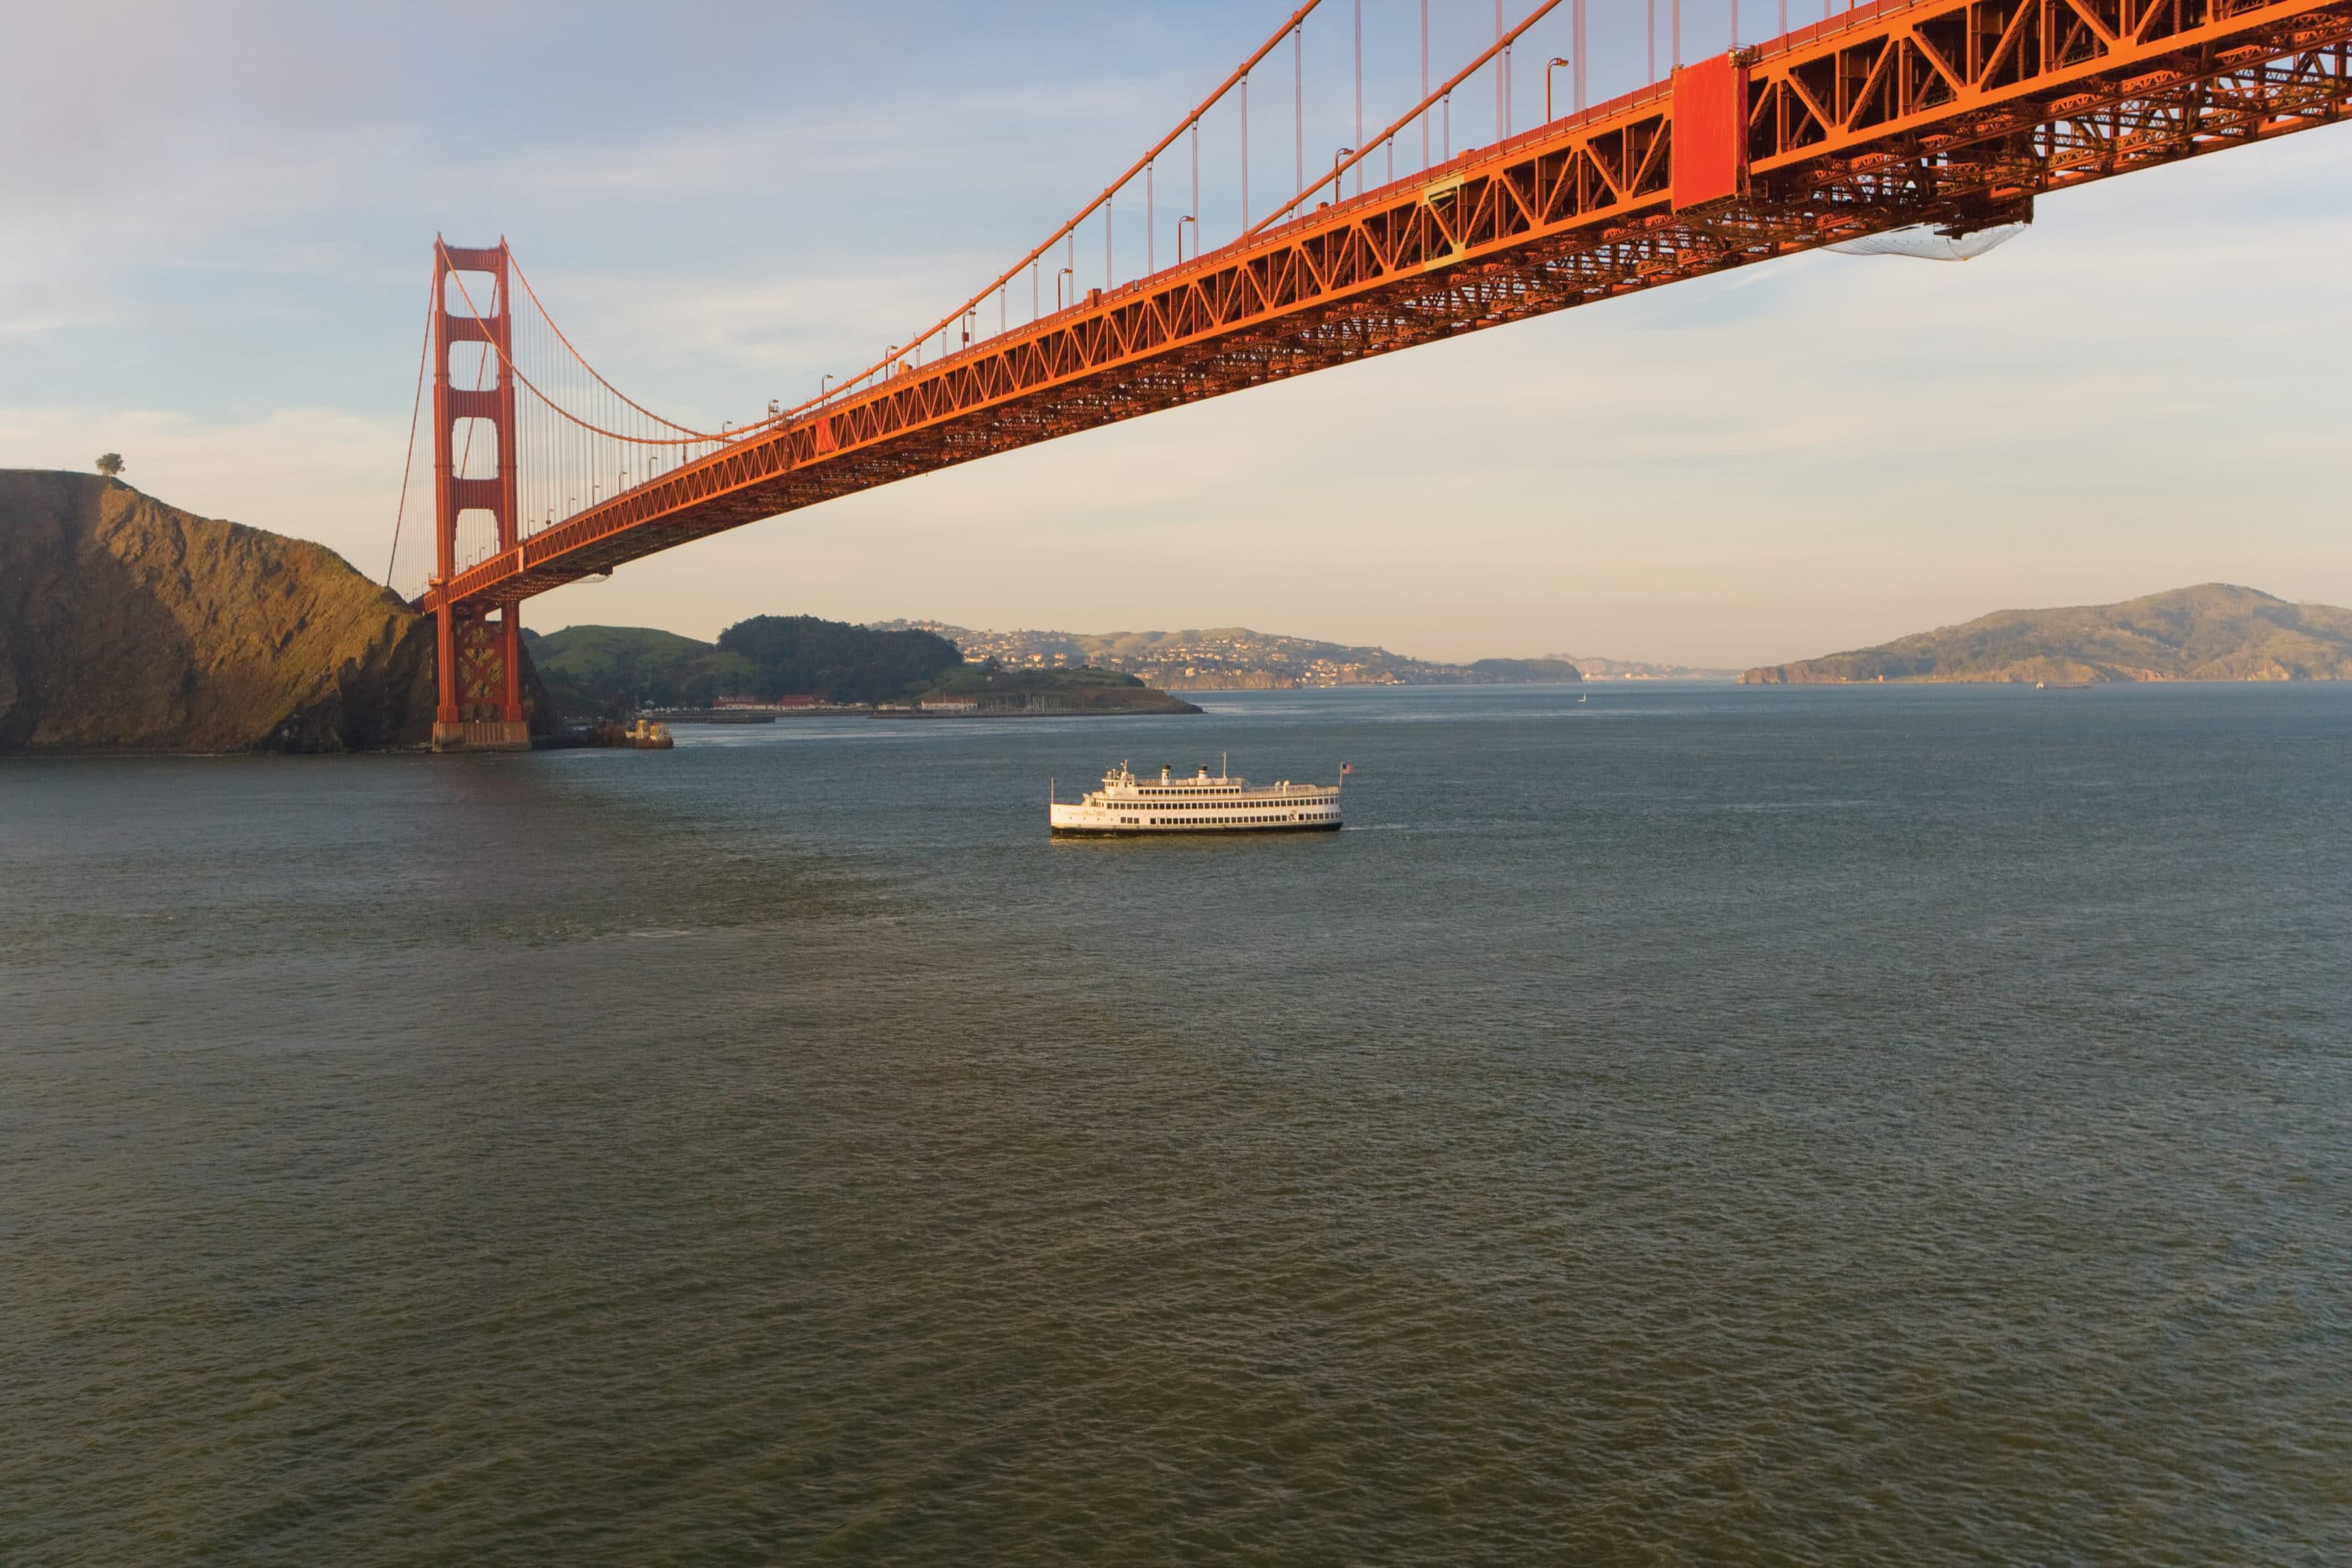 Things to do in San Francisco: Boat tours with Hornblower